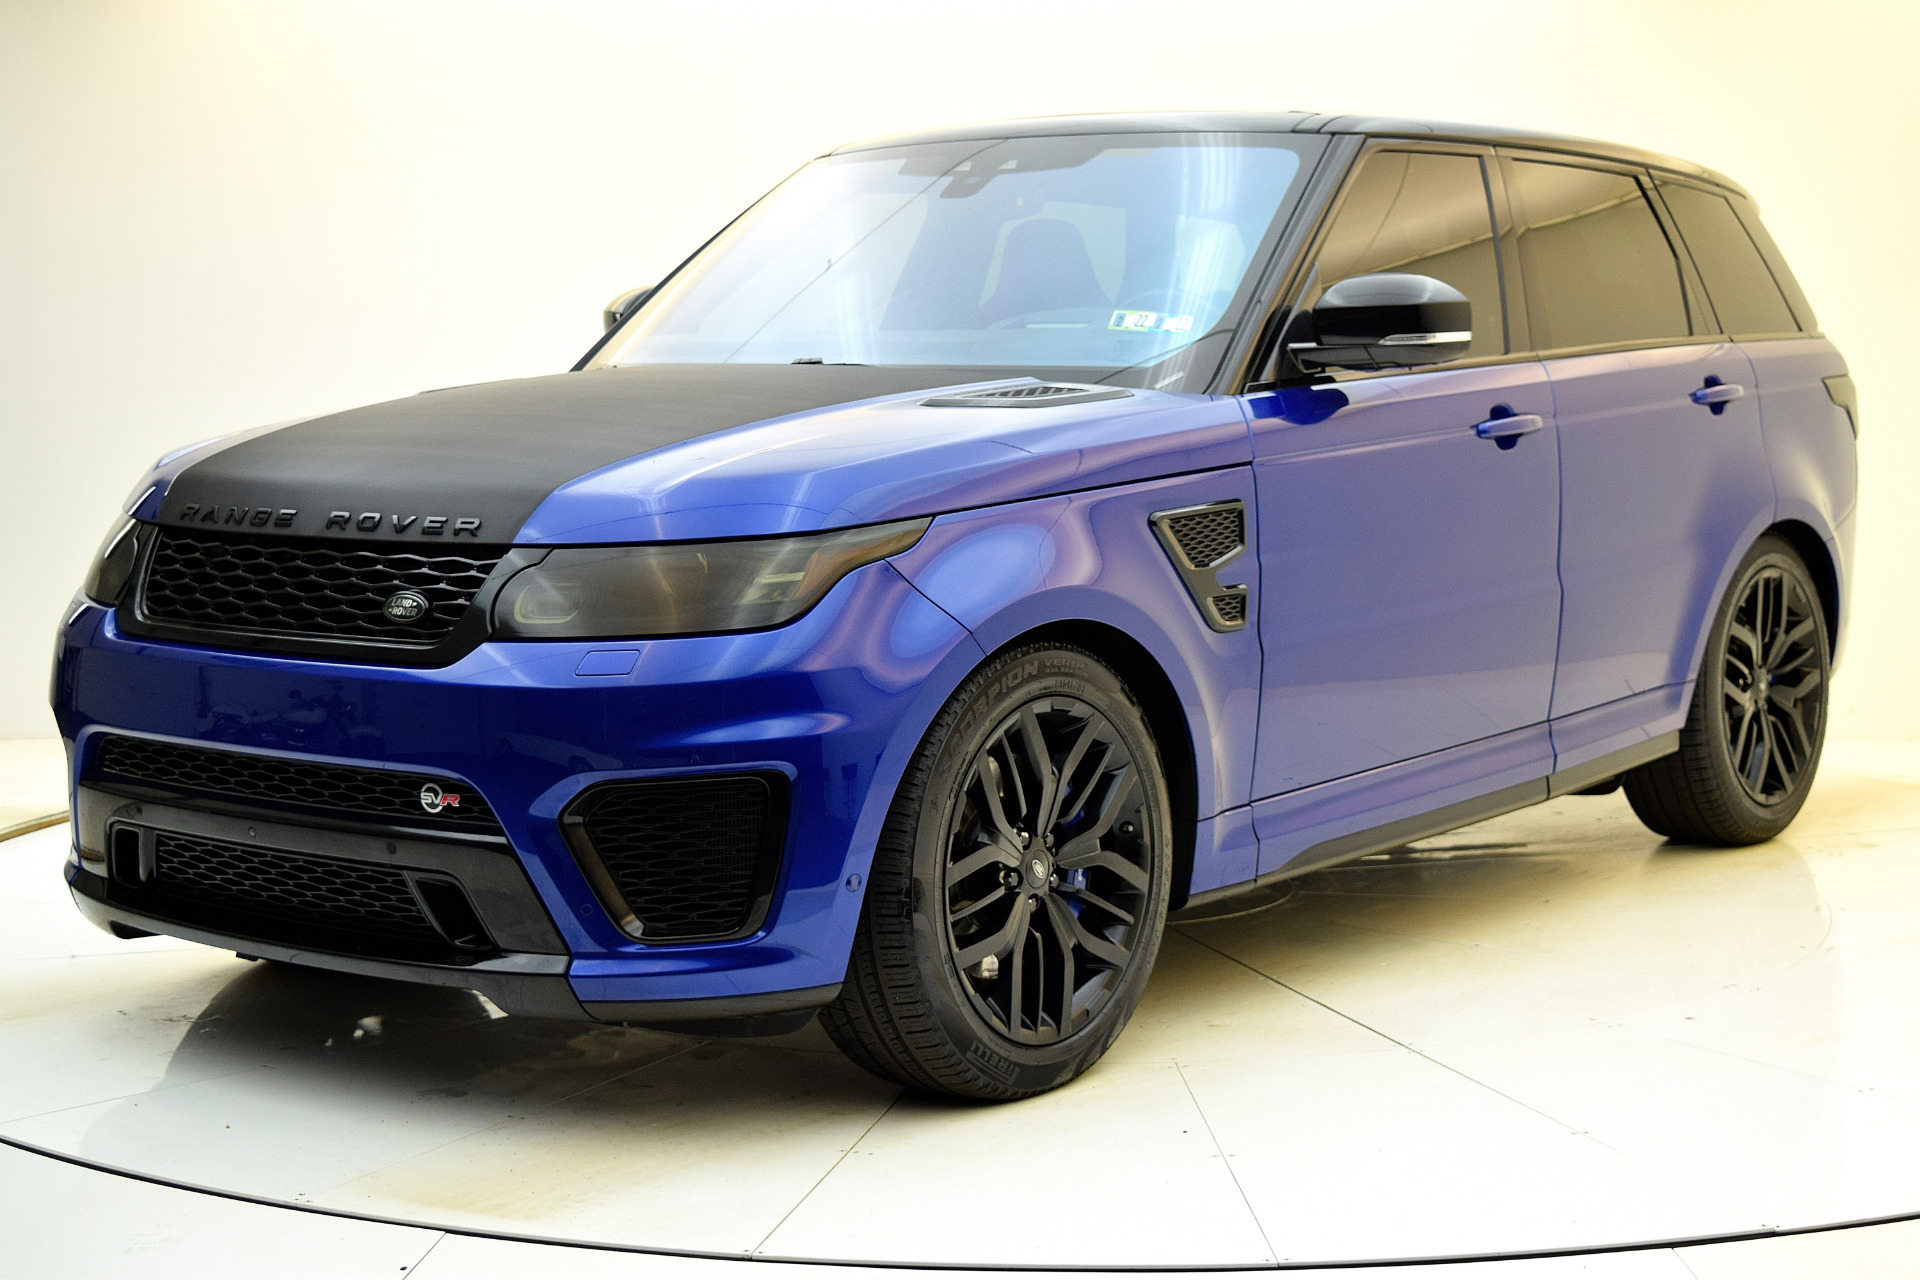 Used 2017 Land Rover Range Rover Sport SVR for sale $79,880 at F.C. Kerbeck Aston Martin in Palmyra NJ 08065 2